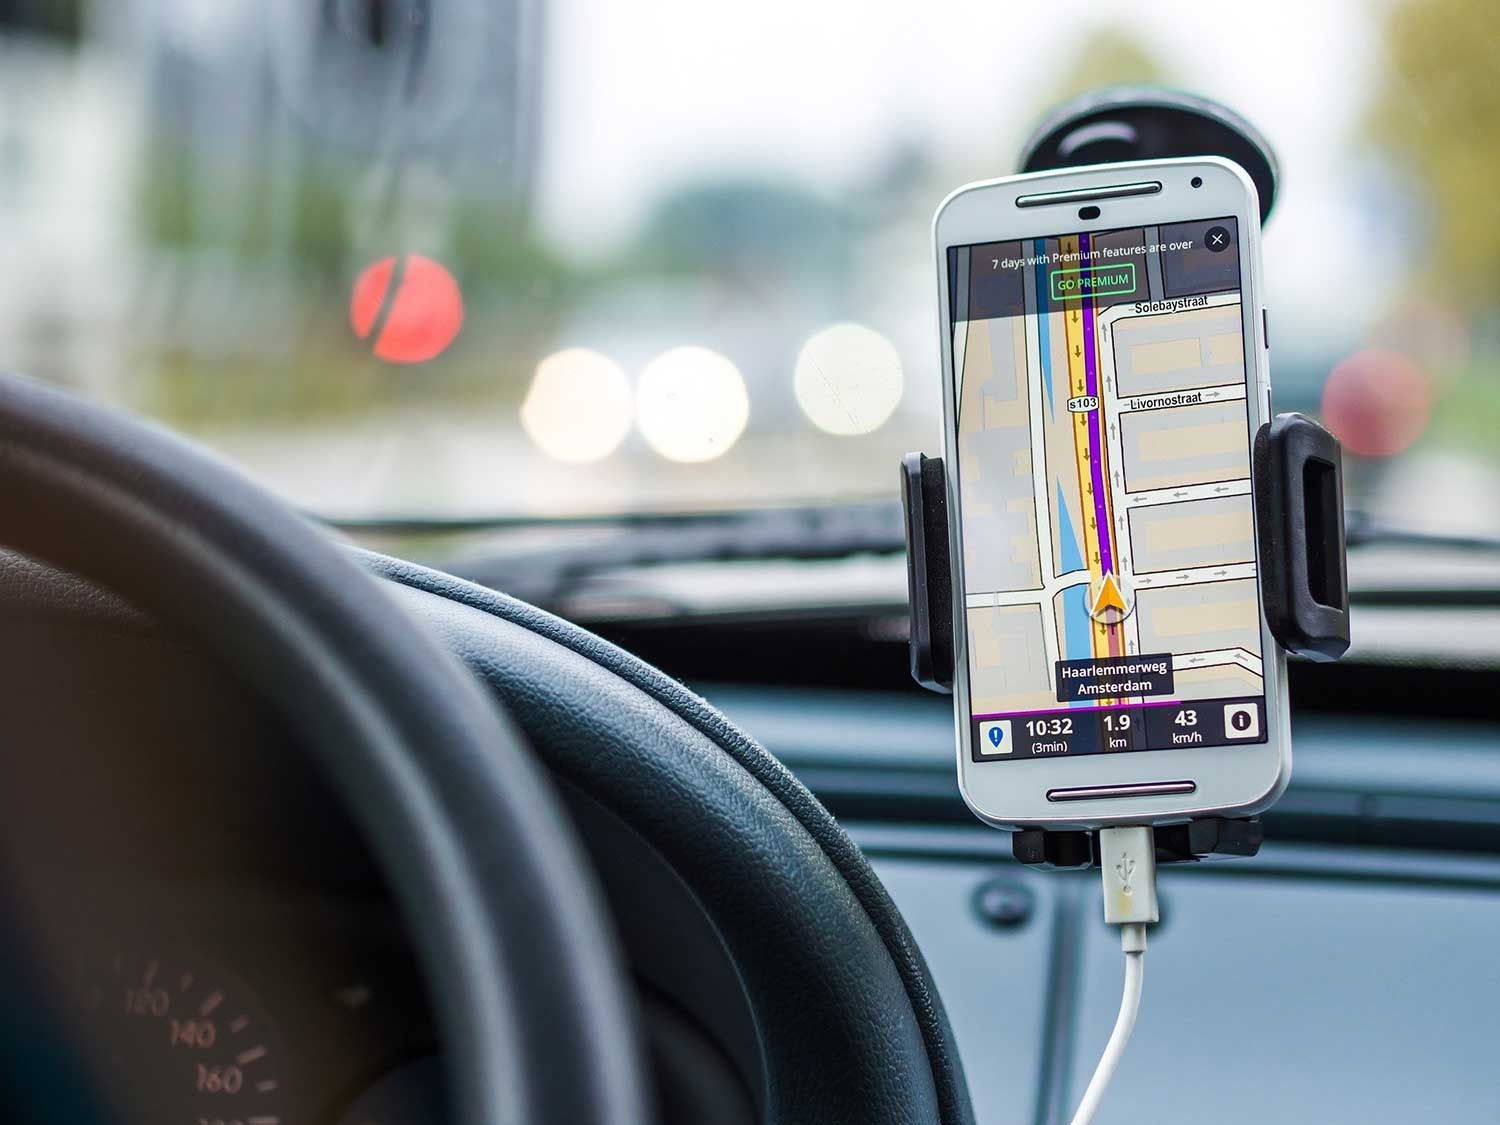 phone mounted in car for navigation